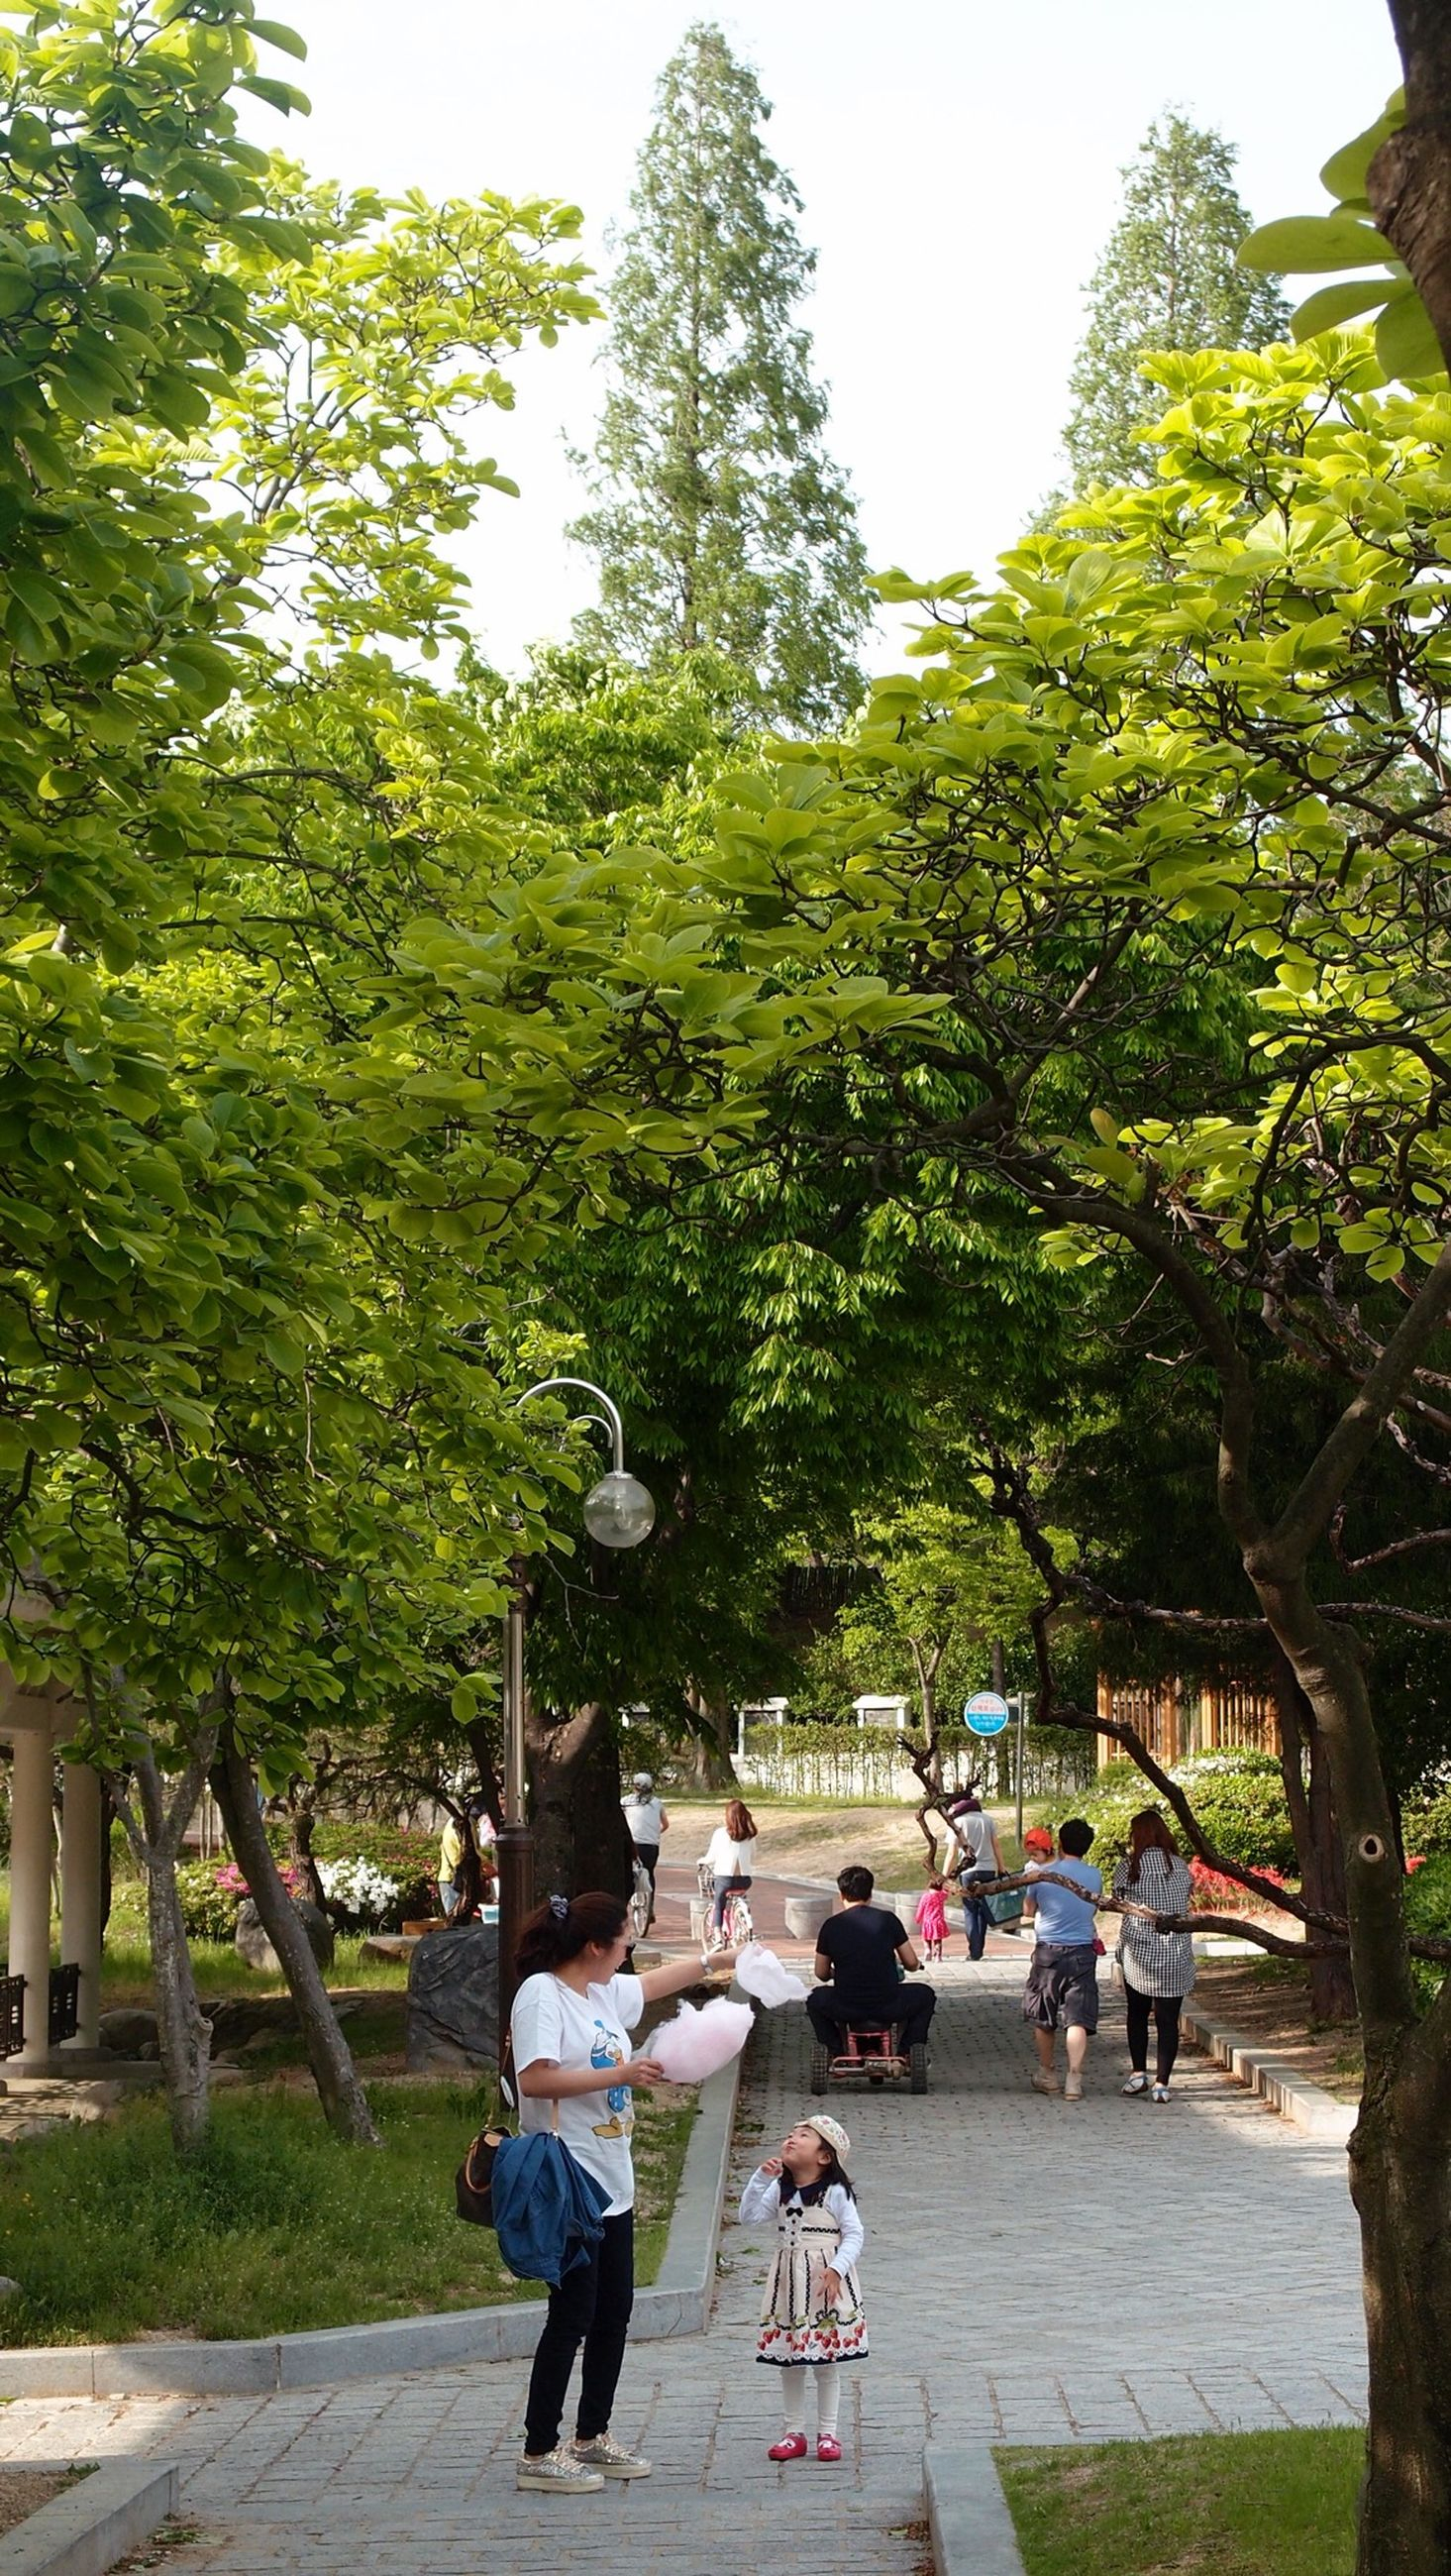 tree, lifestyles, men, person, leisure activity, walking, full length, rear view, casual clothing, togetherness, large group of people, green color, growth, day, sunlight, park - man made space, clear sky, outdoors